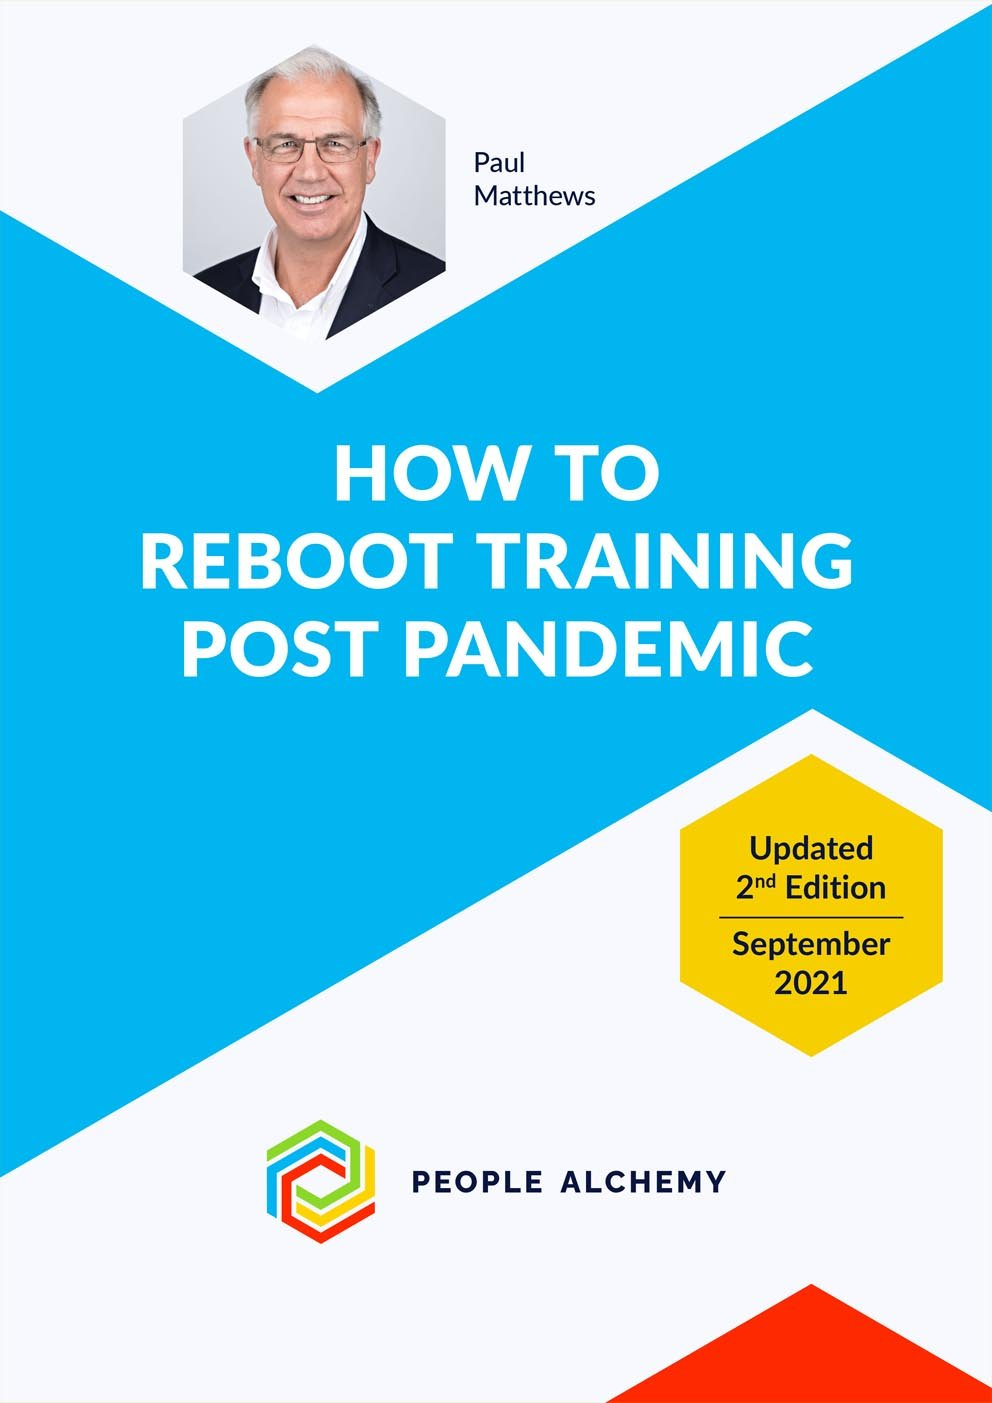 How to Reboot Training Post Pandemic